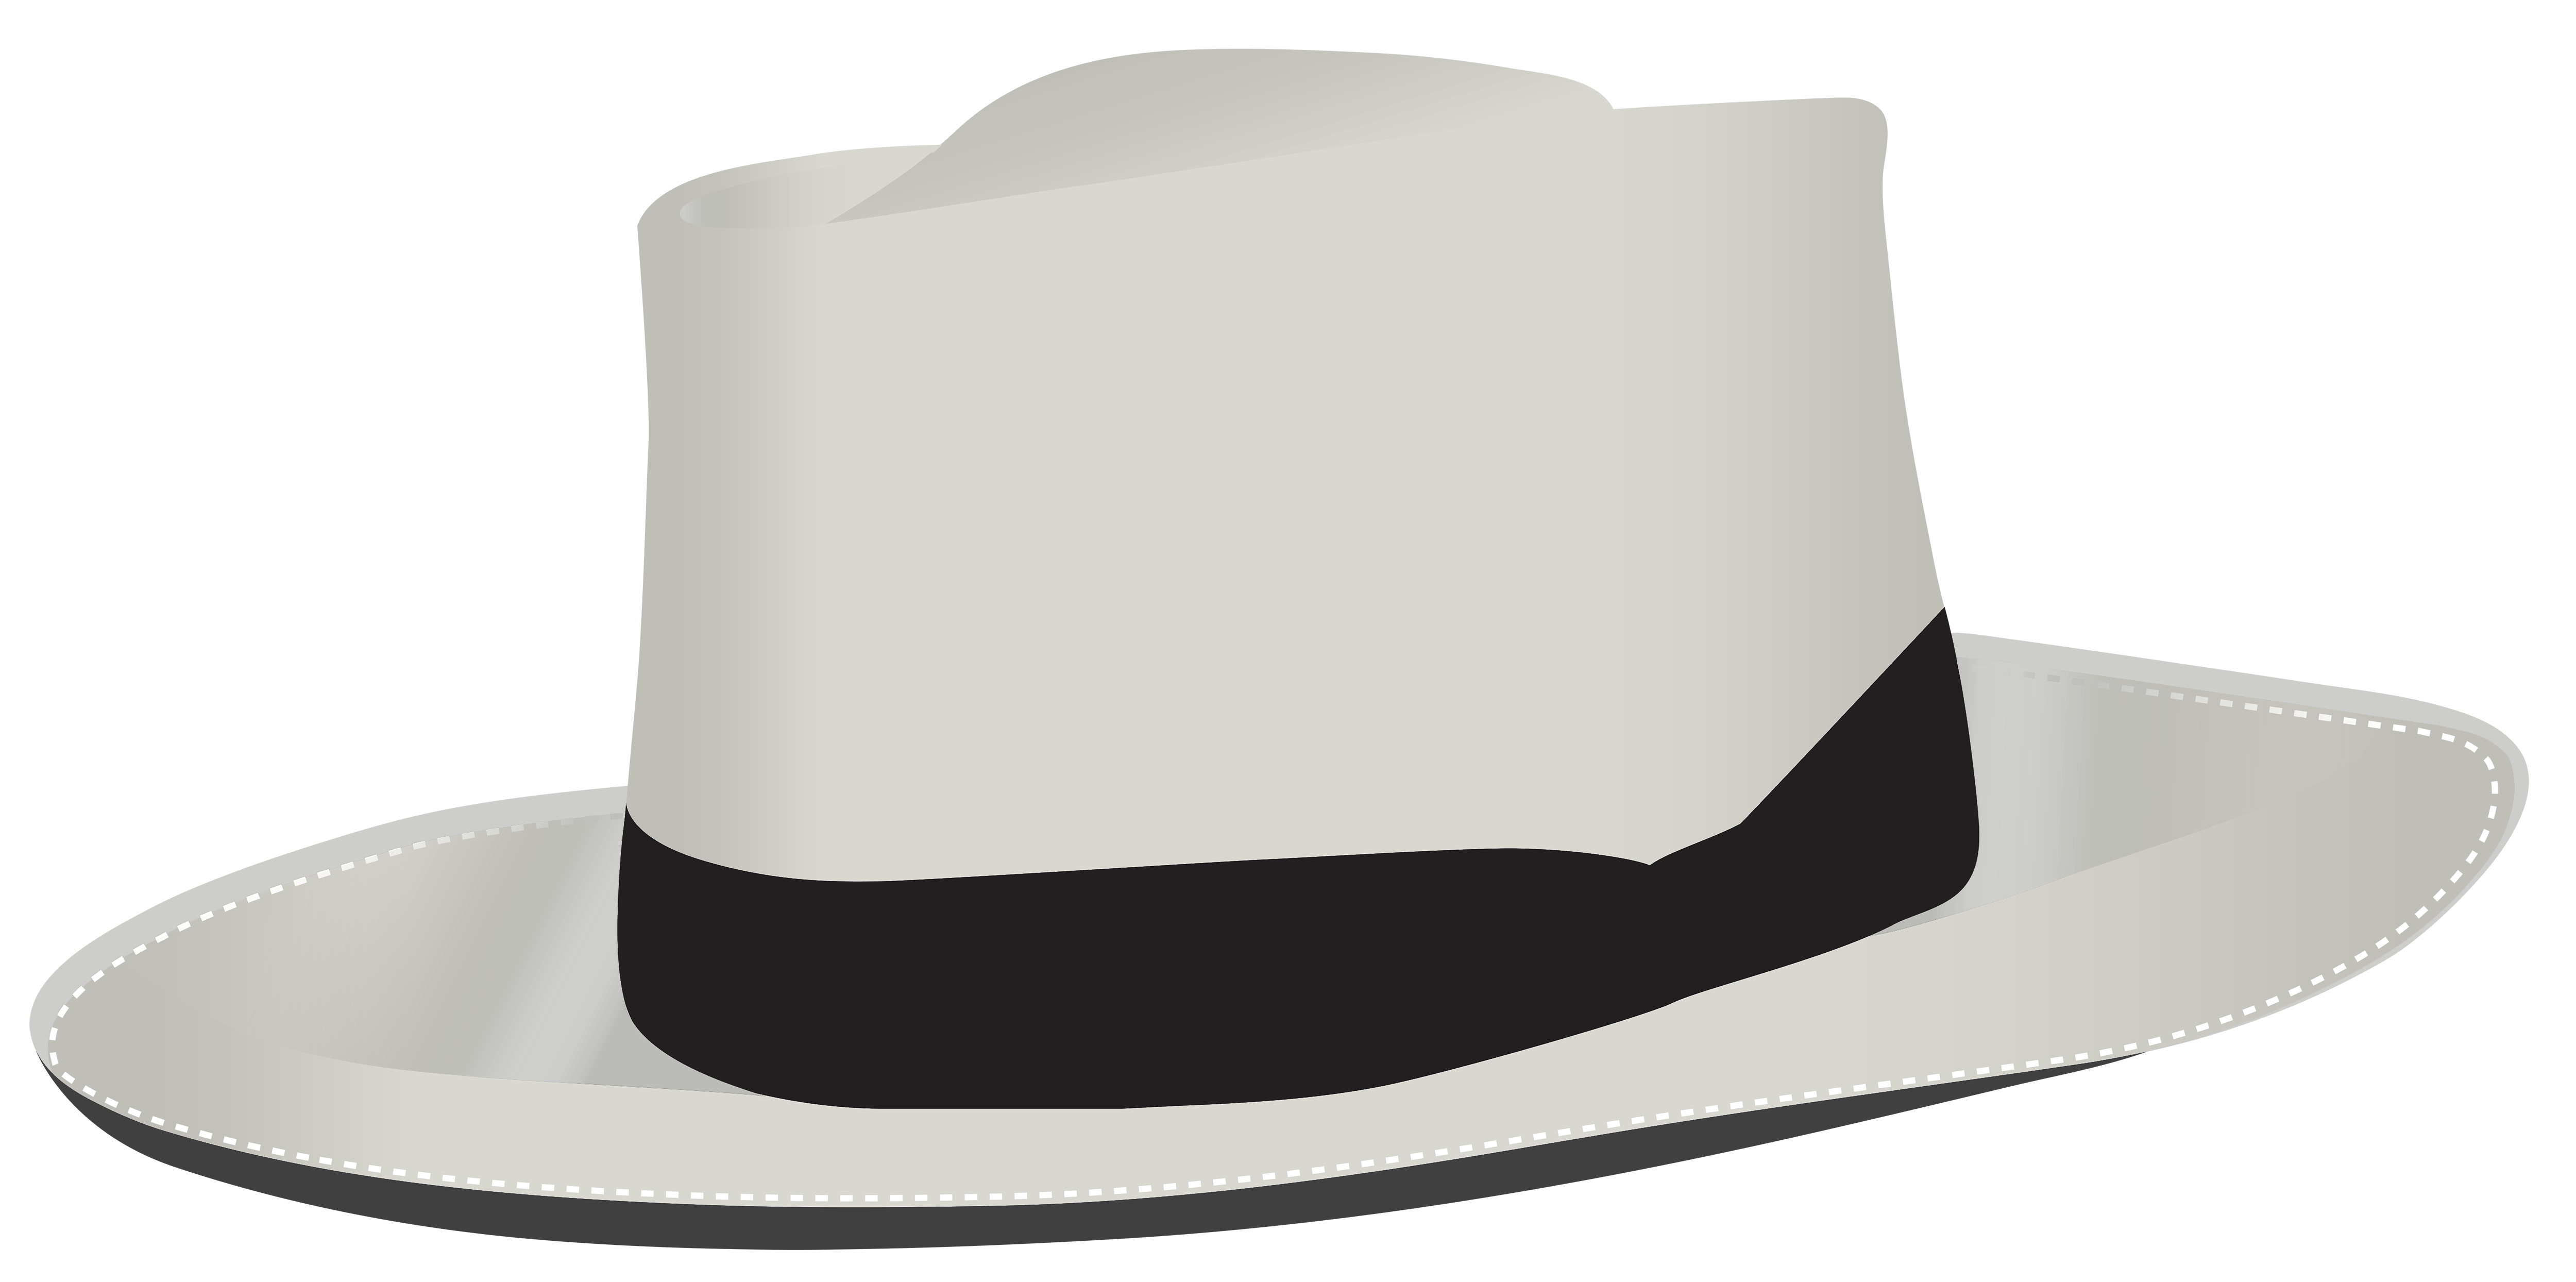 White cowboy hat png. Male transparent clipart gallery